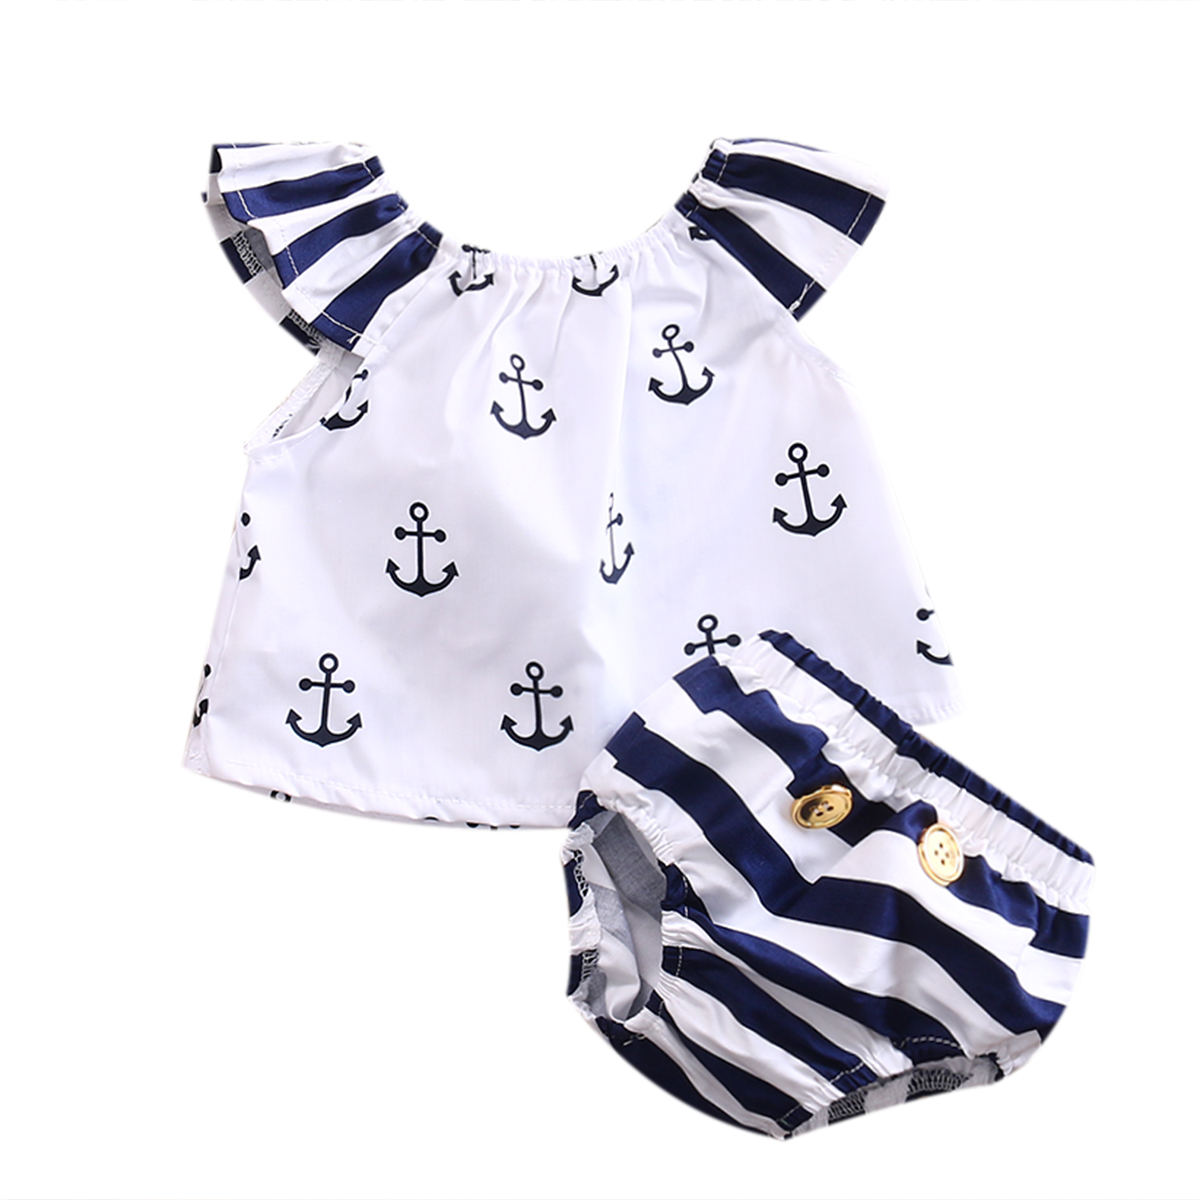 2PCS Newborn Toddler Infant Baby Kid Girls Striped T-shirt Tops+Pants Bottom Outfits Set Cotton Clothes new 2 pcs newborn toddler infant baby boys girls clothes set t shirt tops pants outfits s01